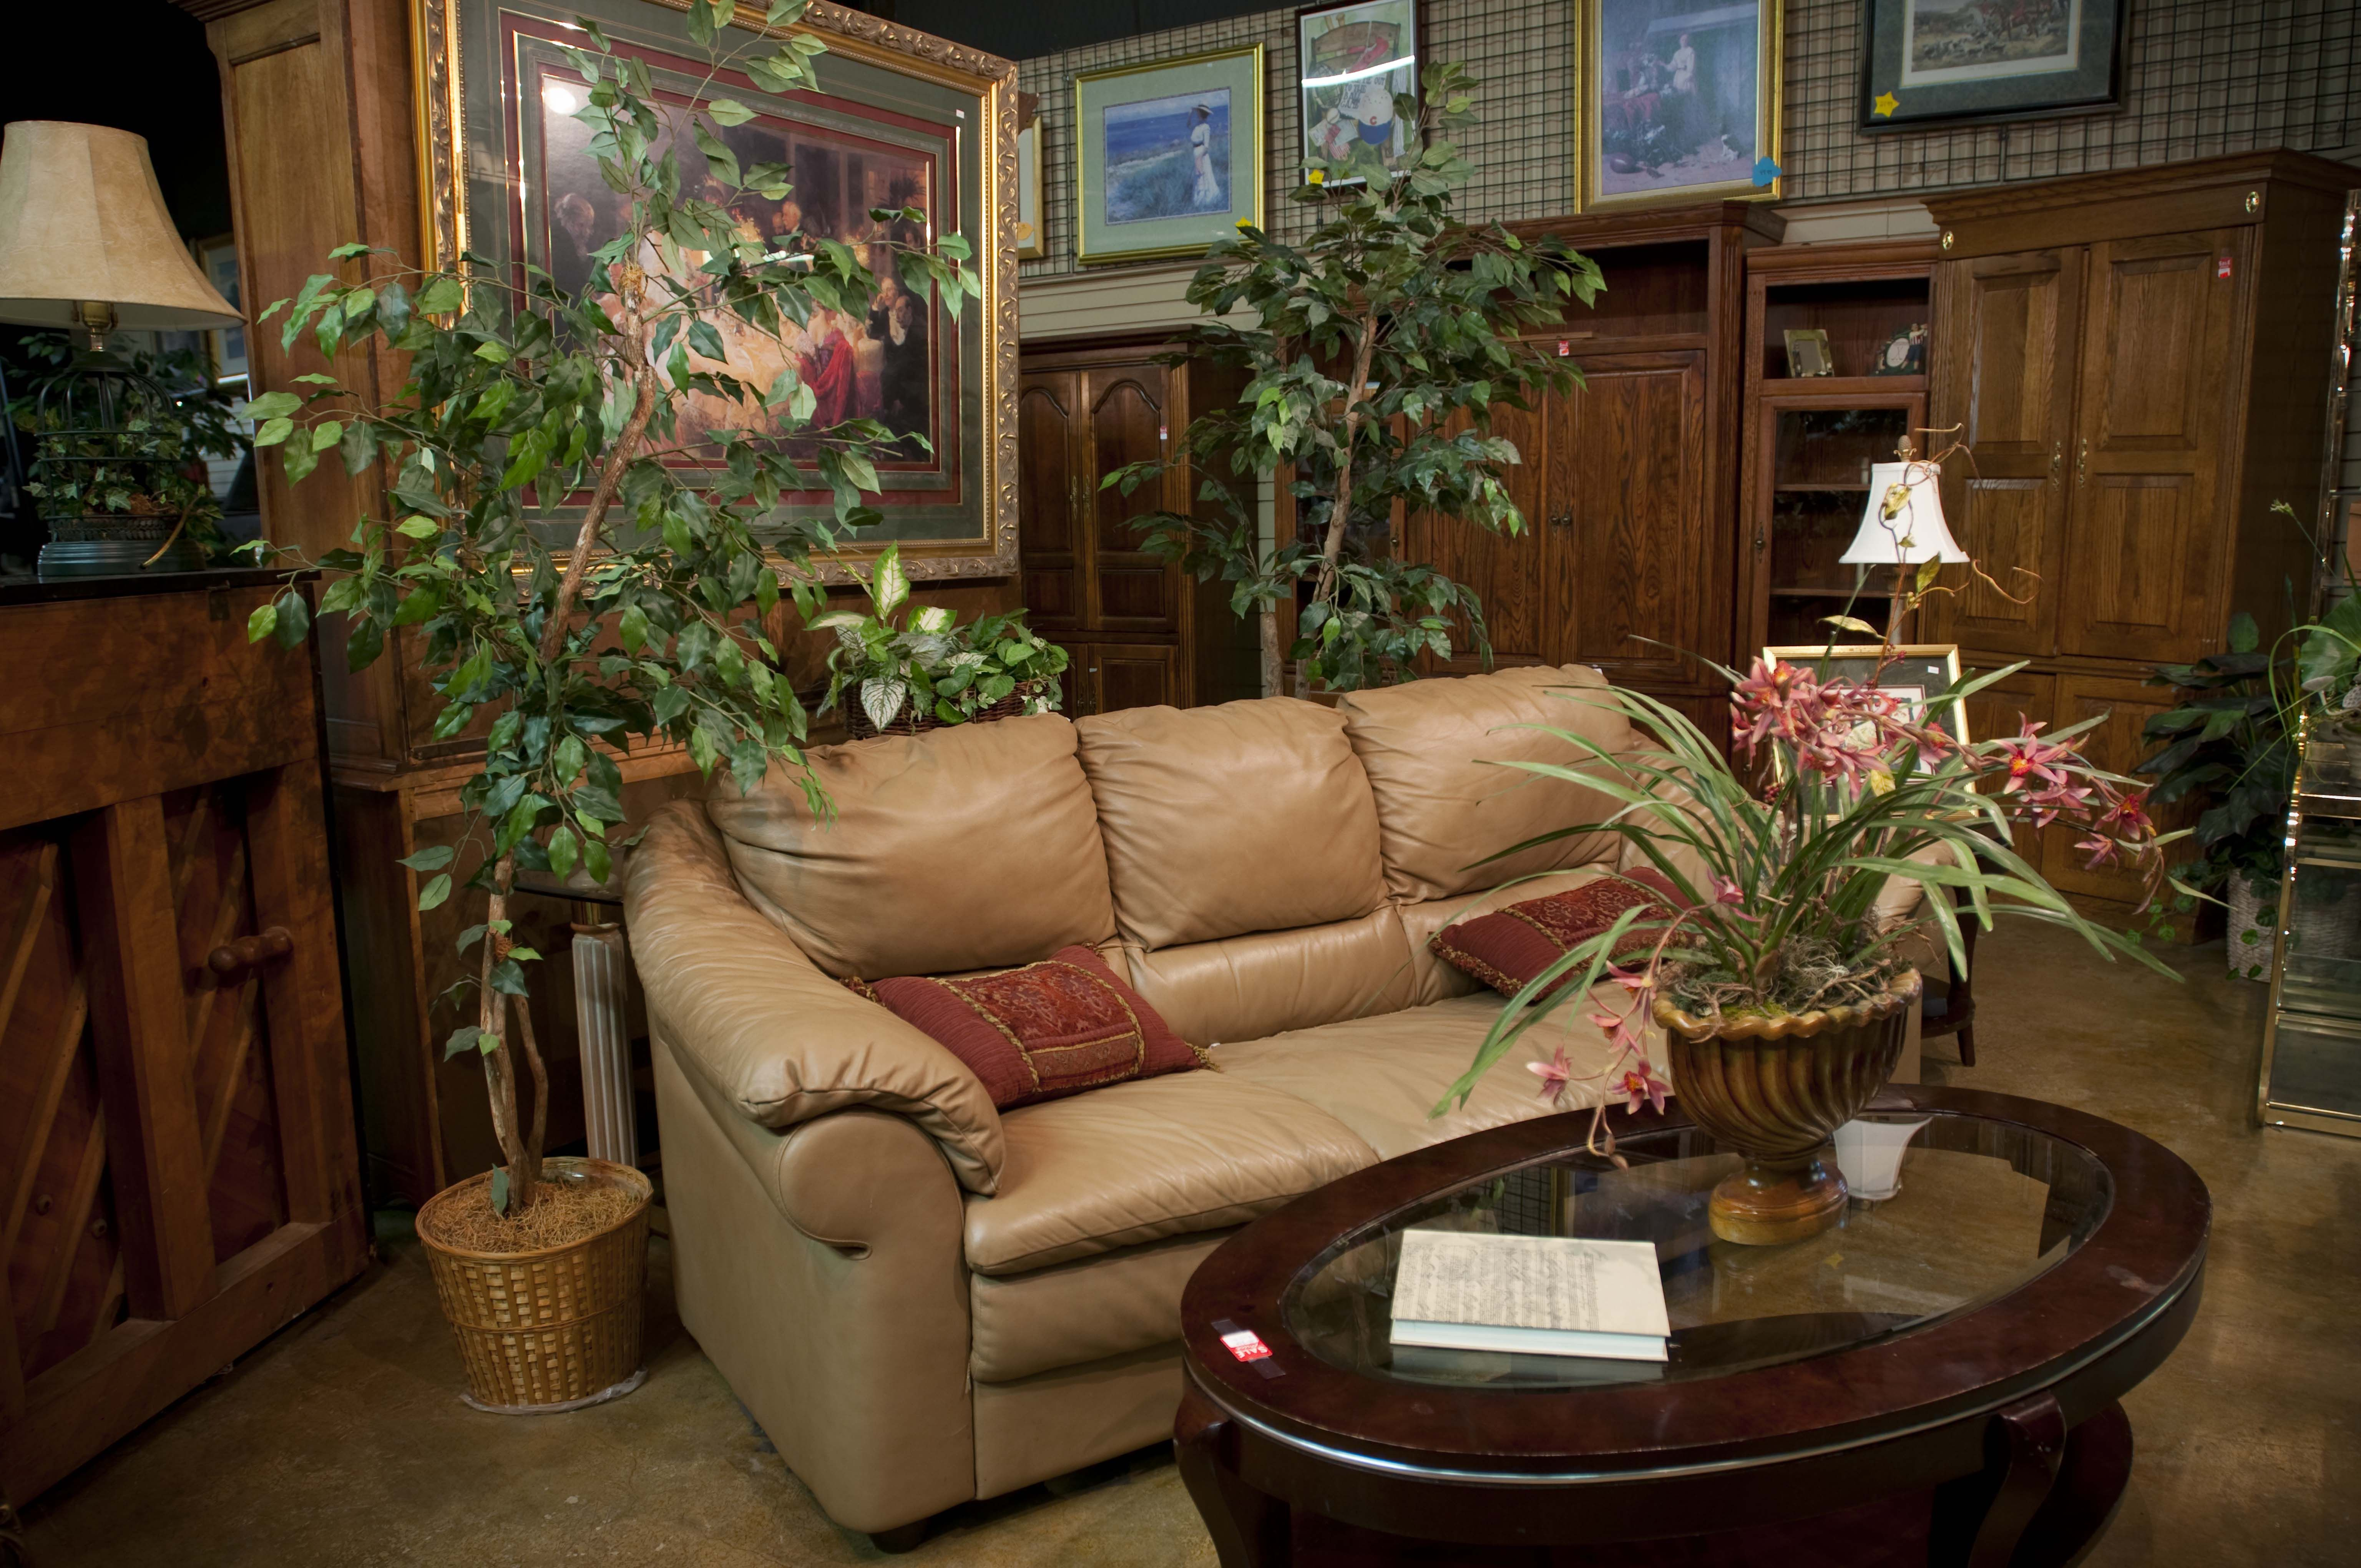 Graceful Buys in Grapevine, Texas near Highland Village ...